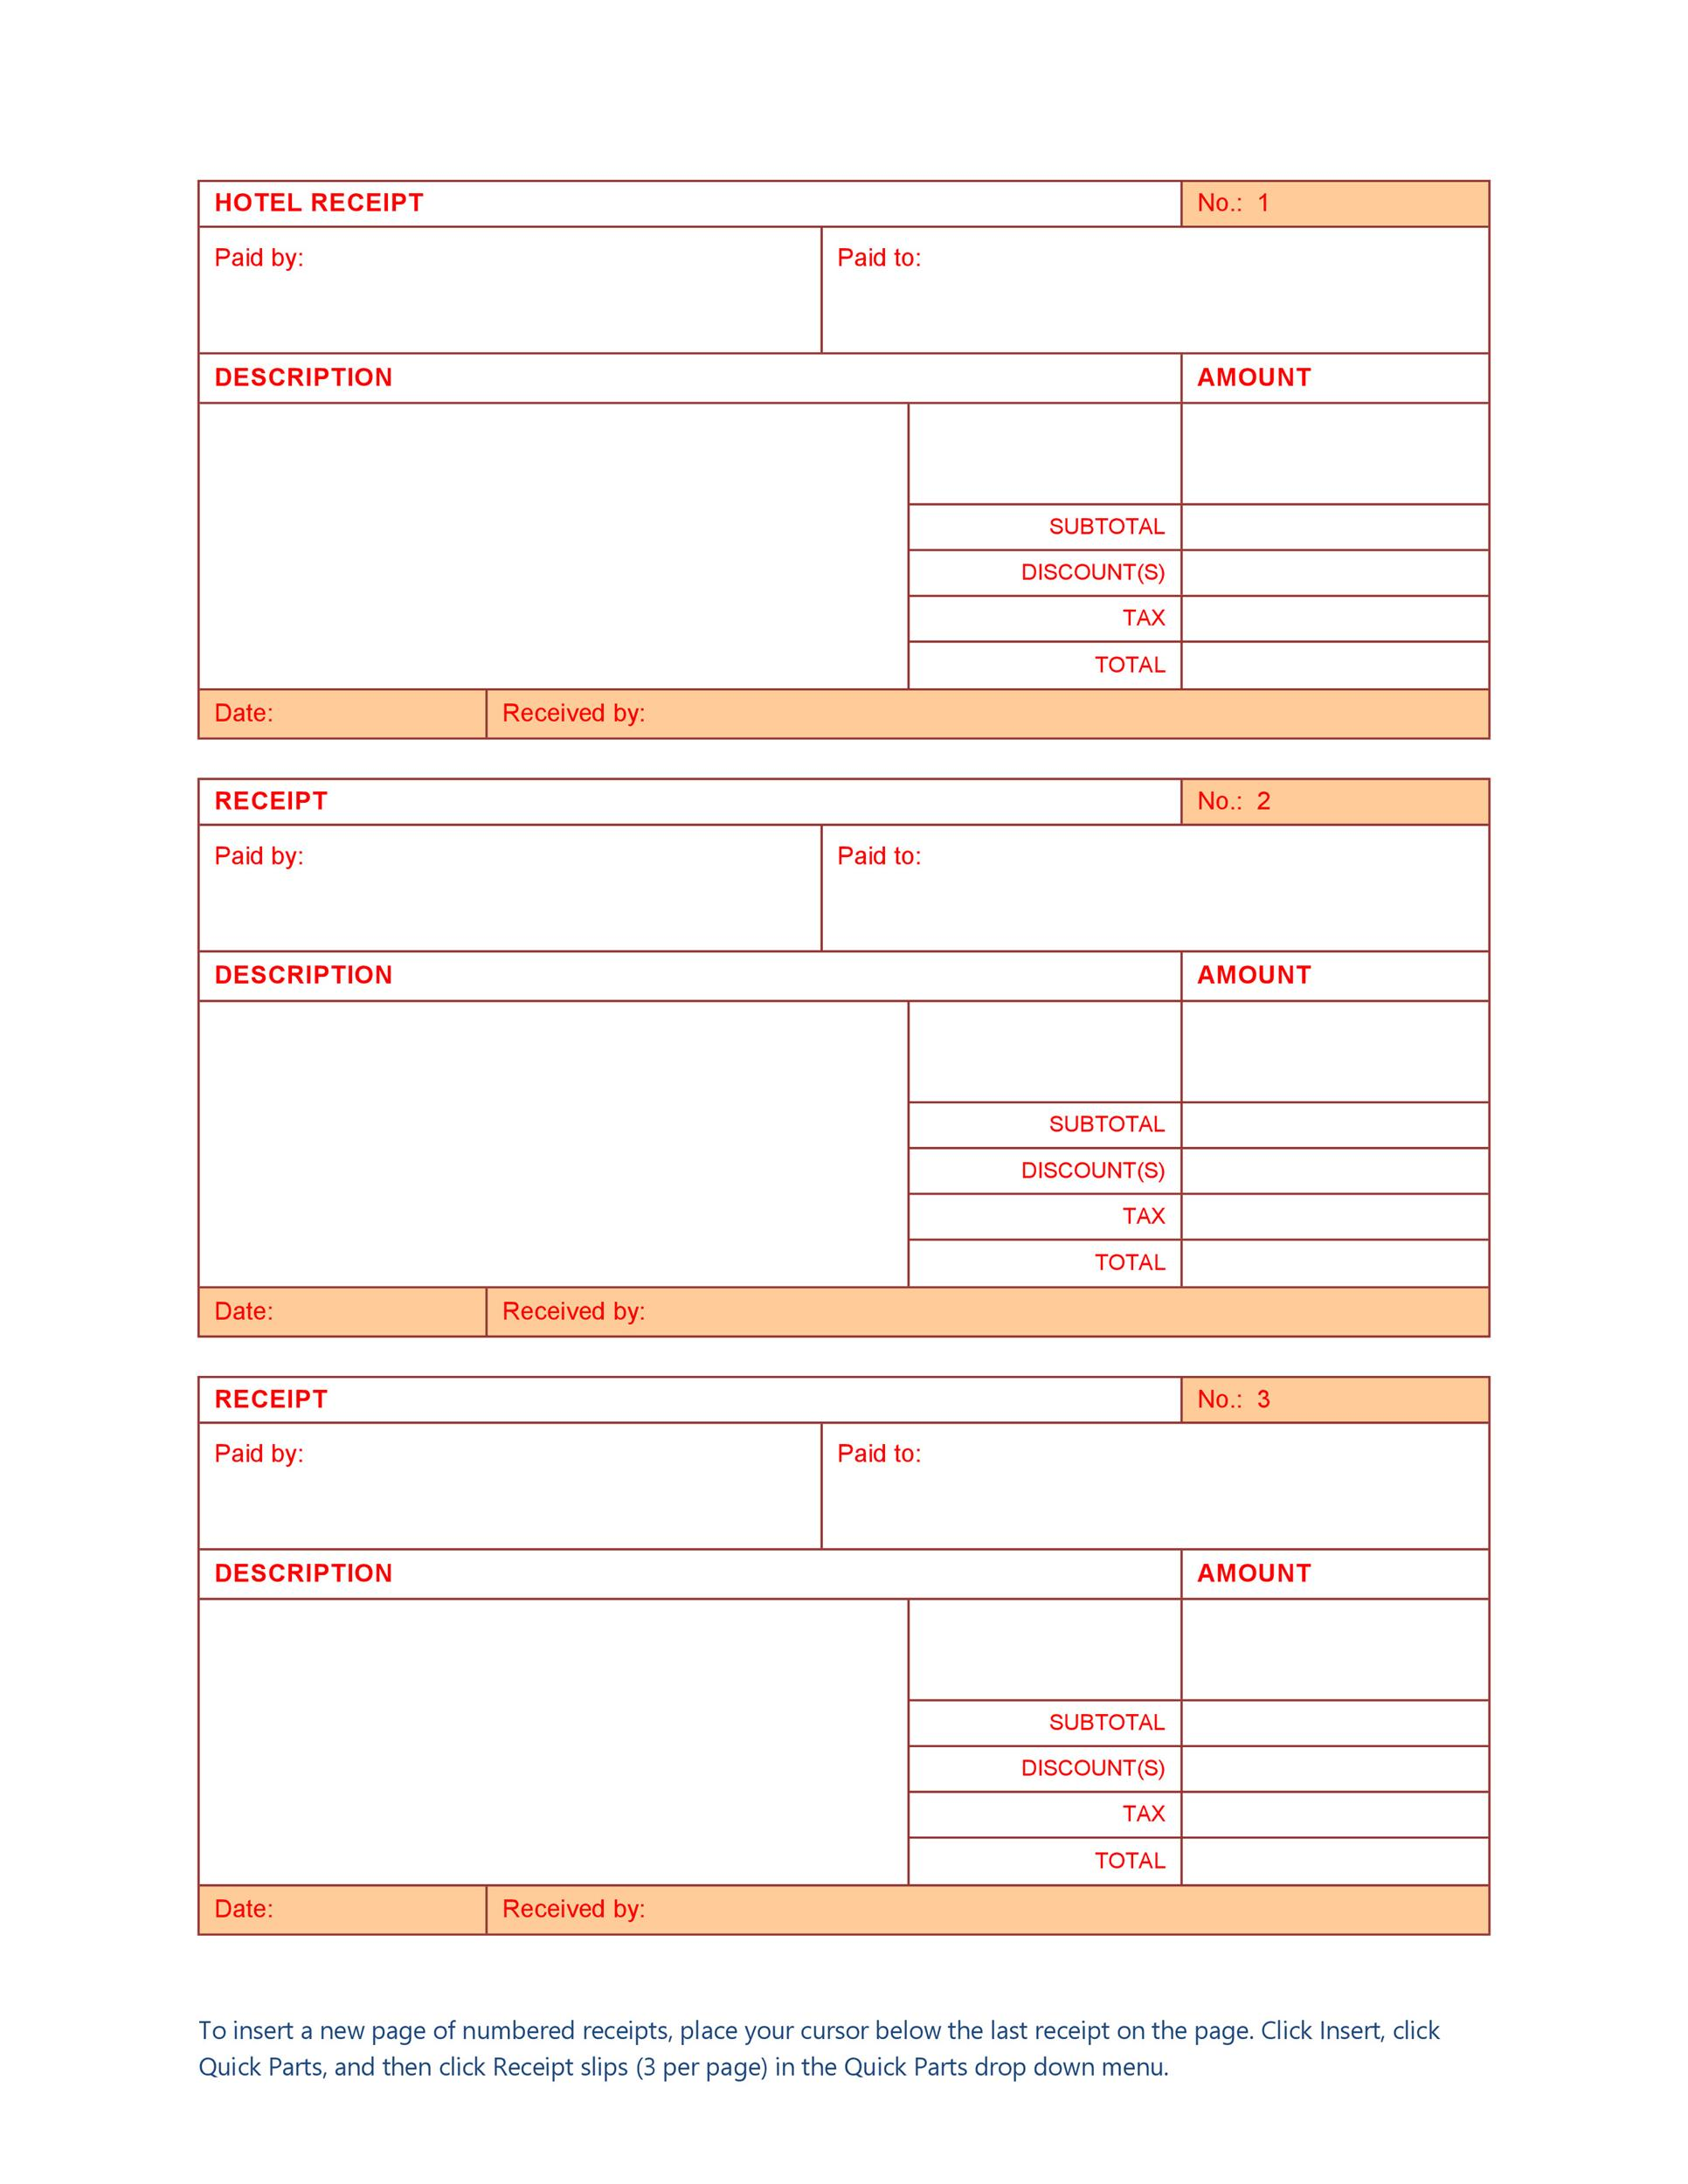 Free Hotel Receipt Template Word